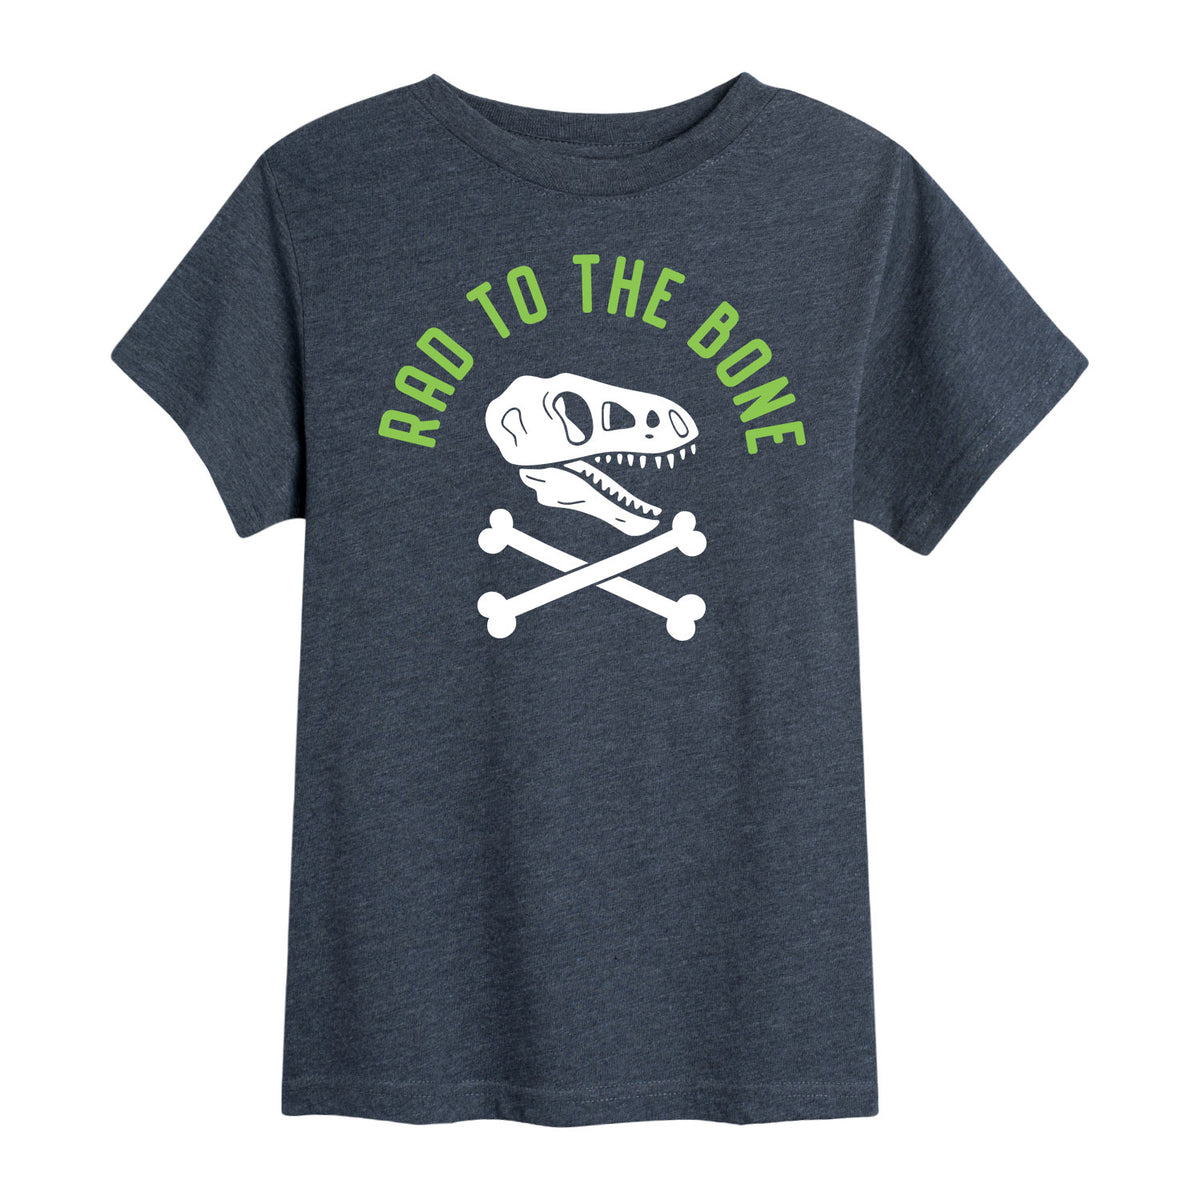 Rad To The Bone - Toddler Short Sleeve T-Shirt